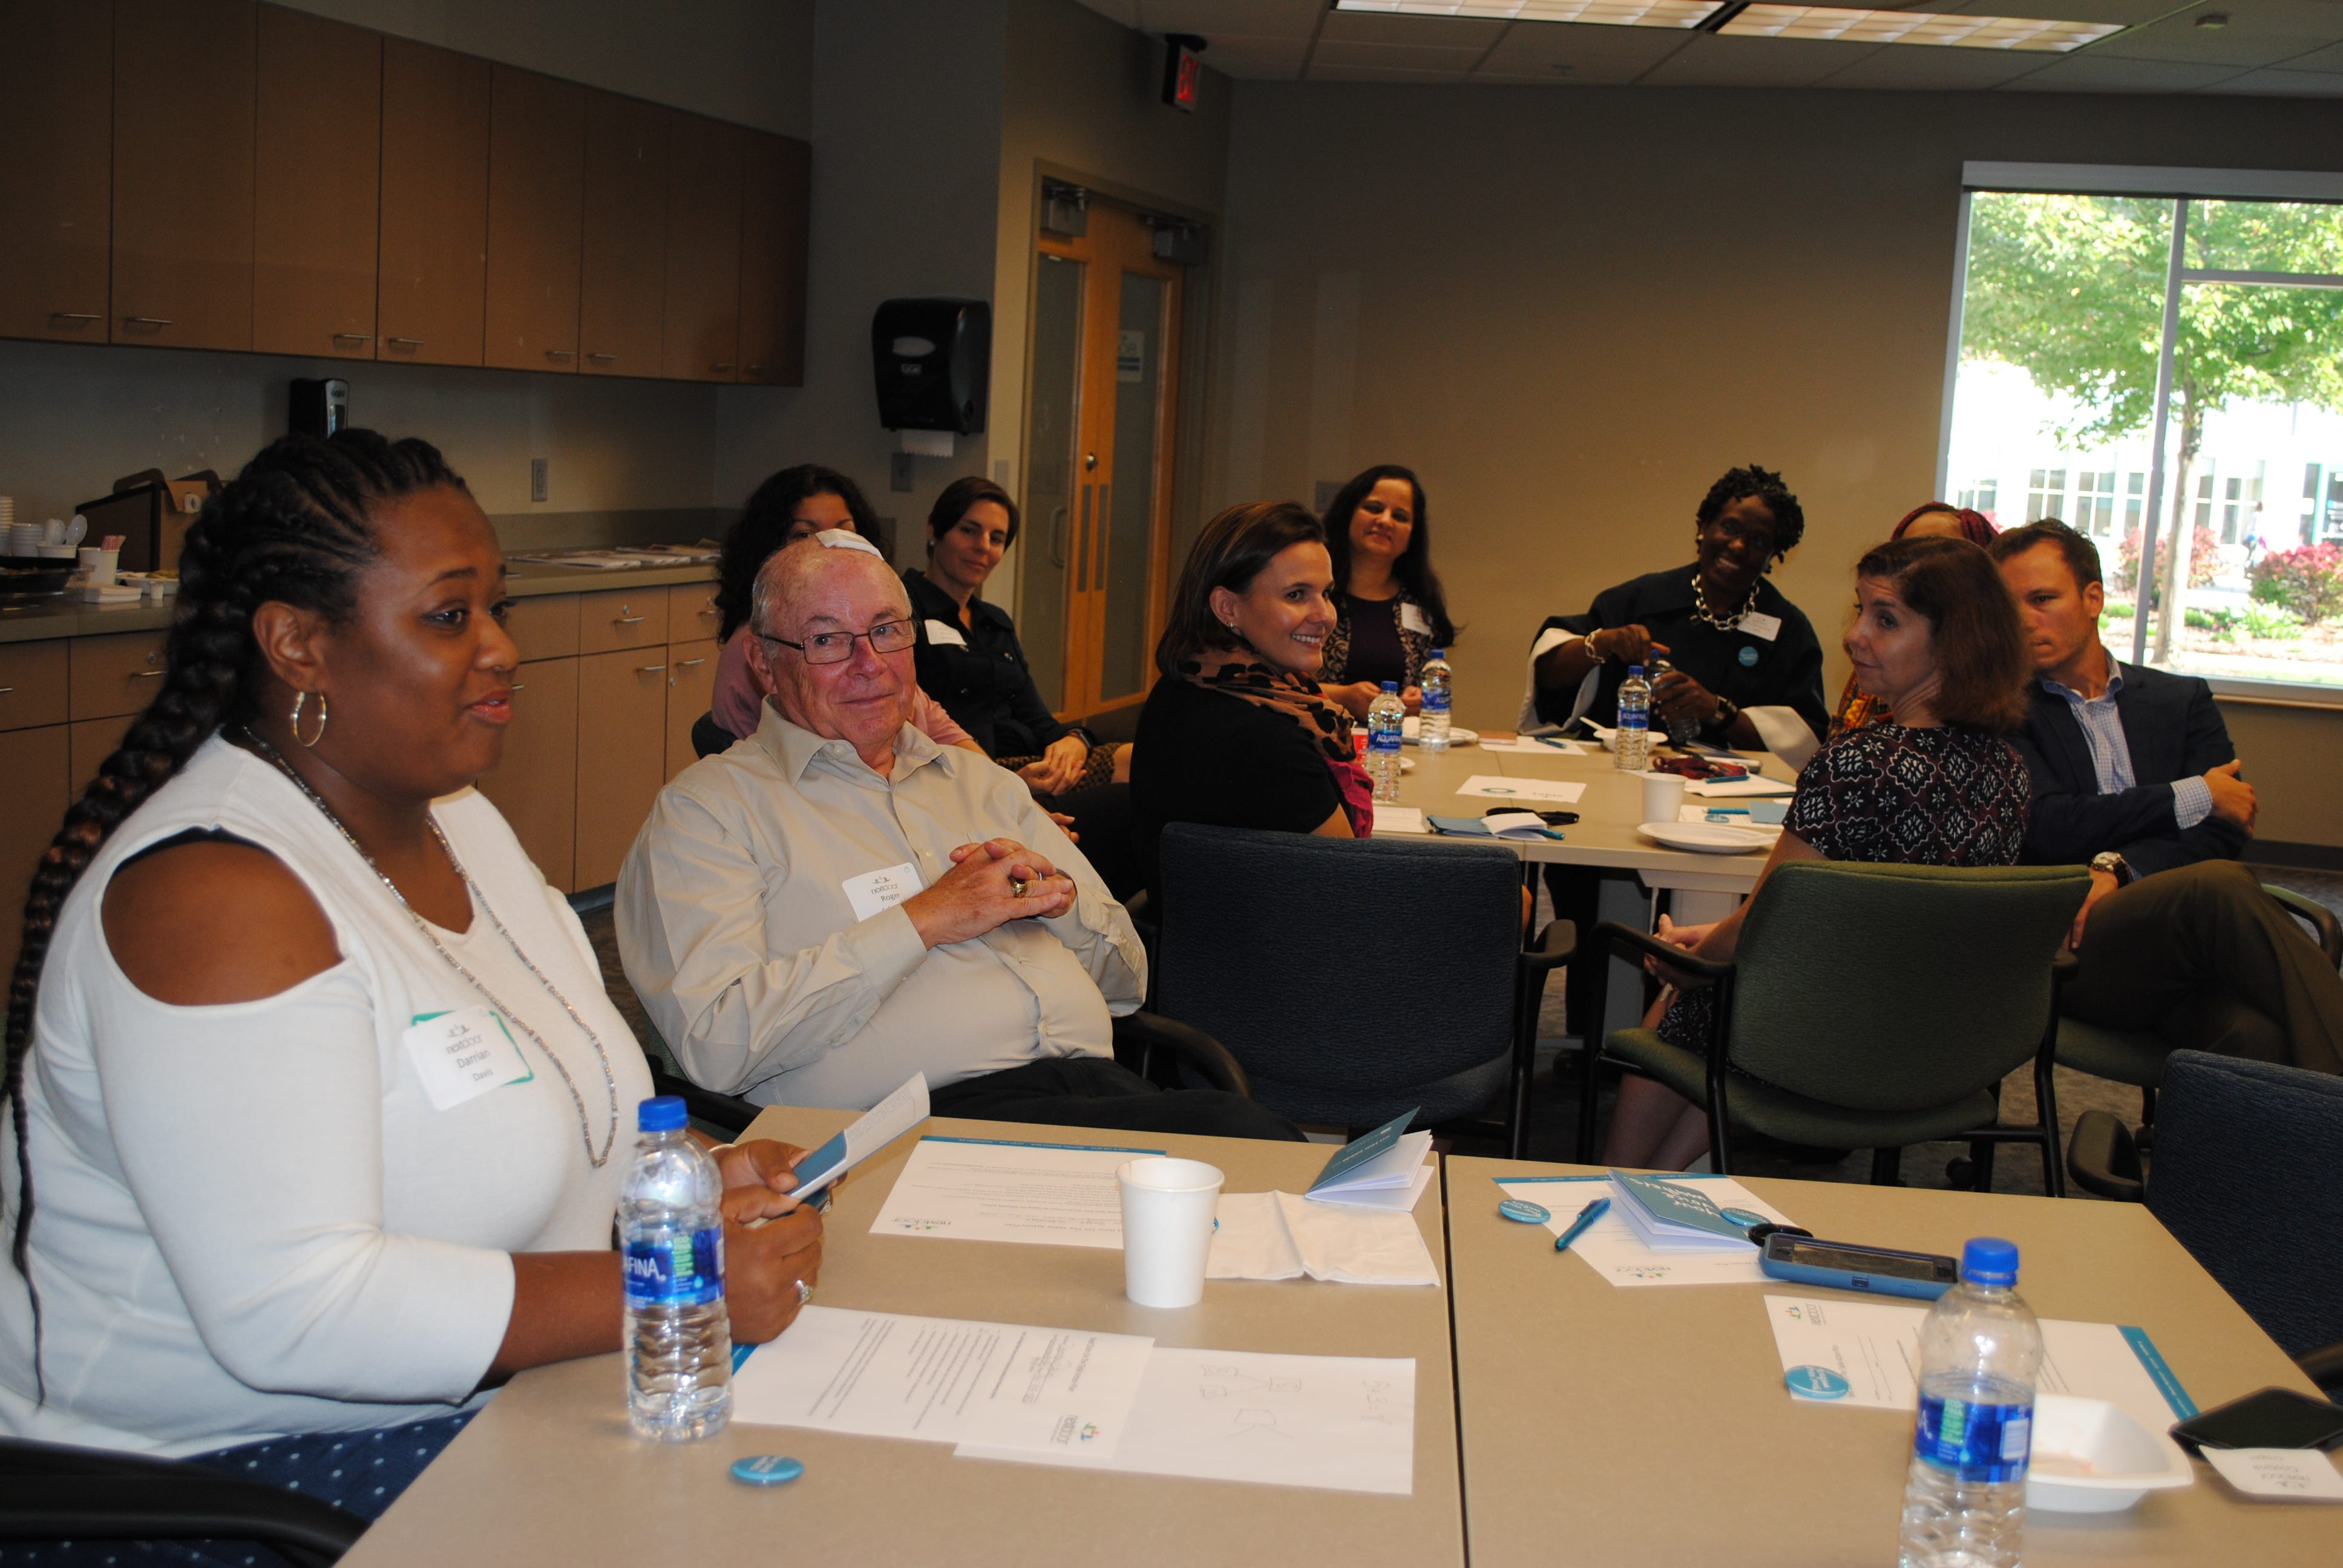 Darrian Davis, a board member and former parent at the Next Door Foundation, talks during a brainstorming session on early childhood education at the nonprofit Tuesday. The discussion was one of hundreds taking place around the region as part of the Greater Milwaukee Foundation's On the Table initiative aimed at improving life in southeastern Wisconsin.